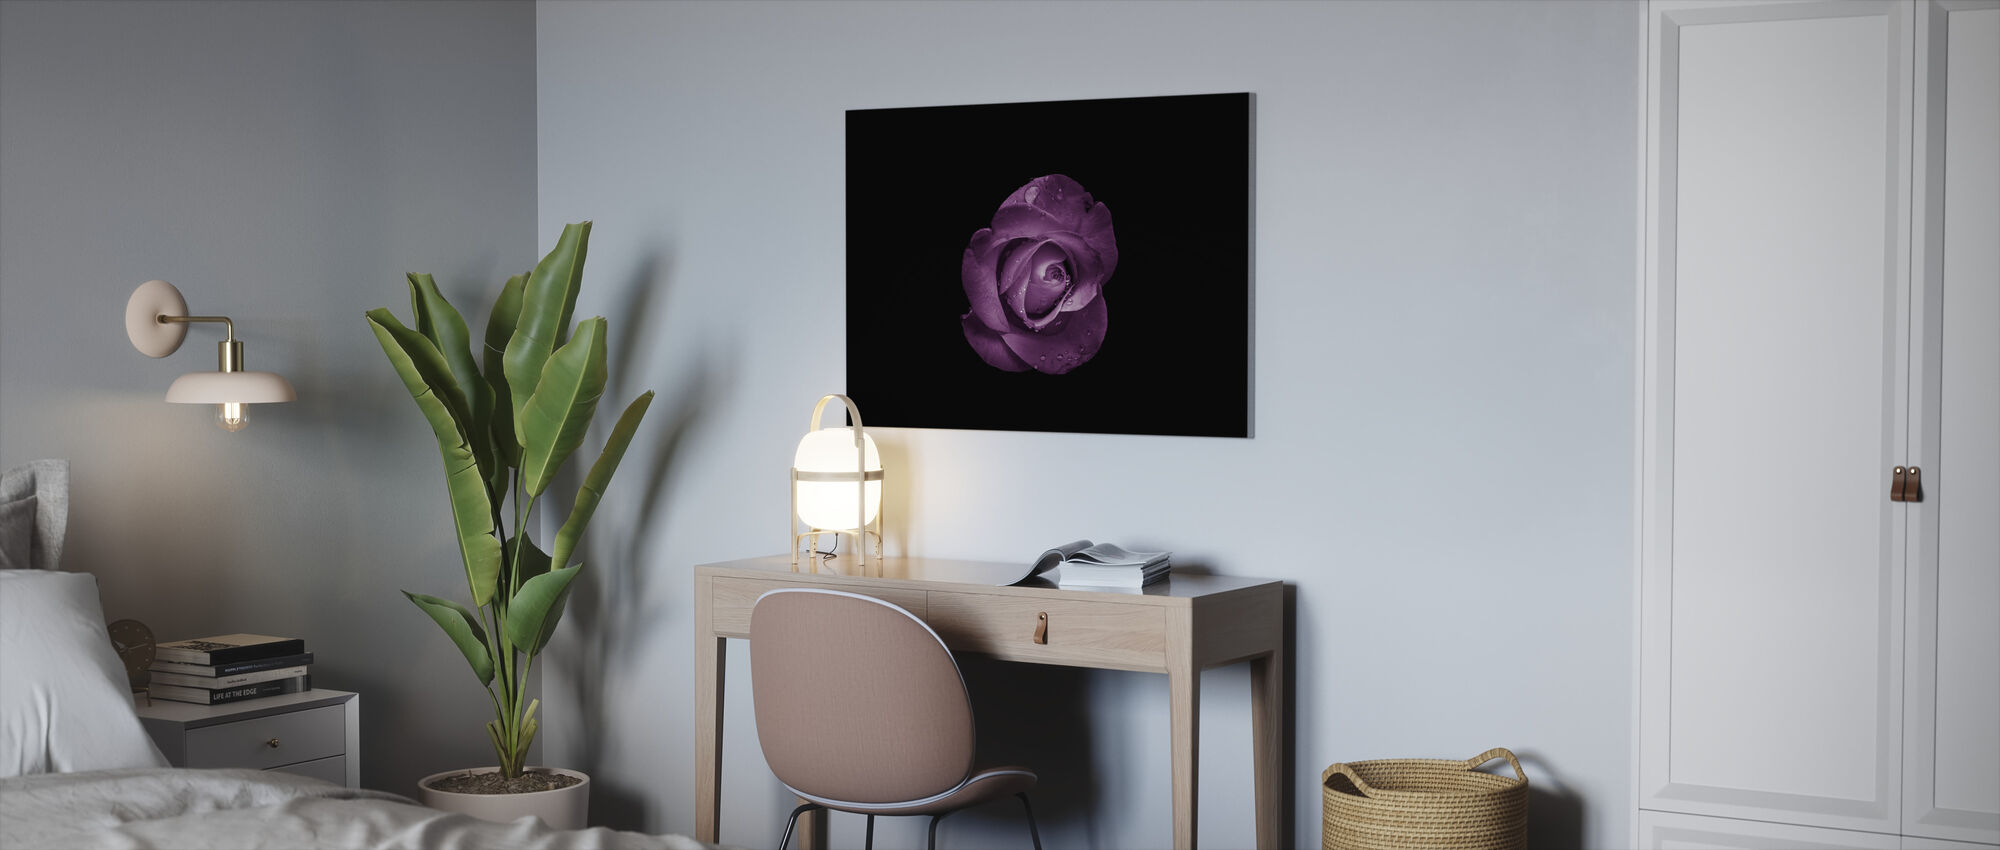 Flower with Water Drops - Canvas print - Office